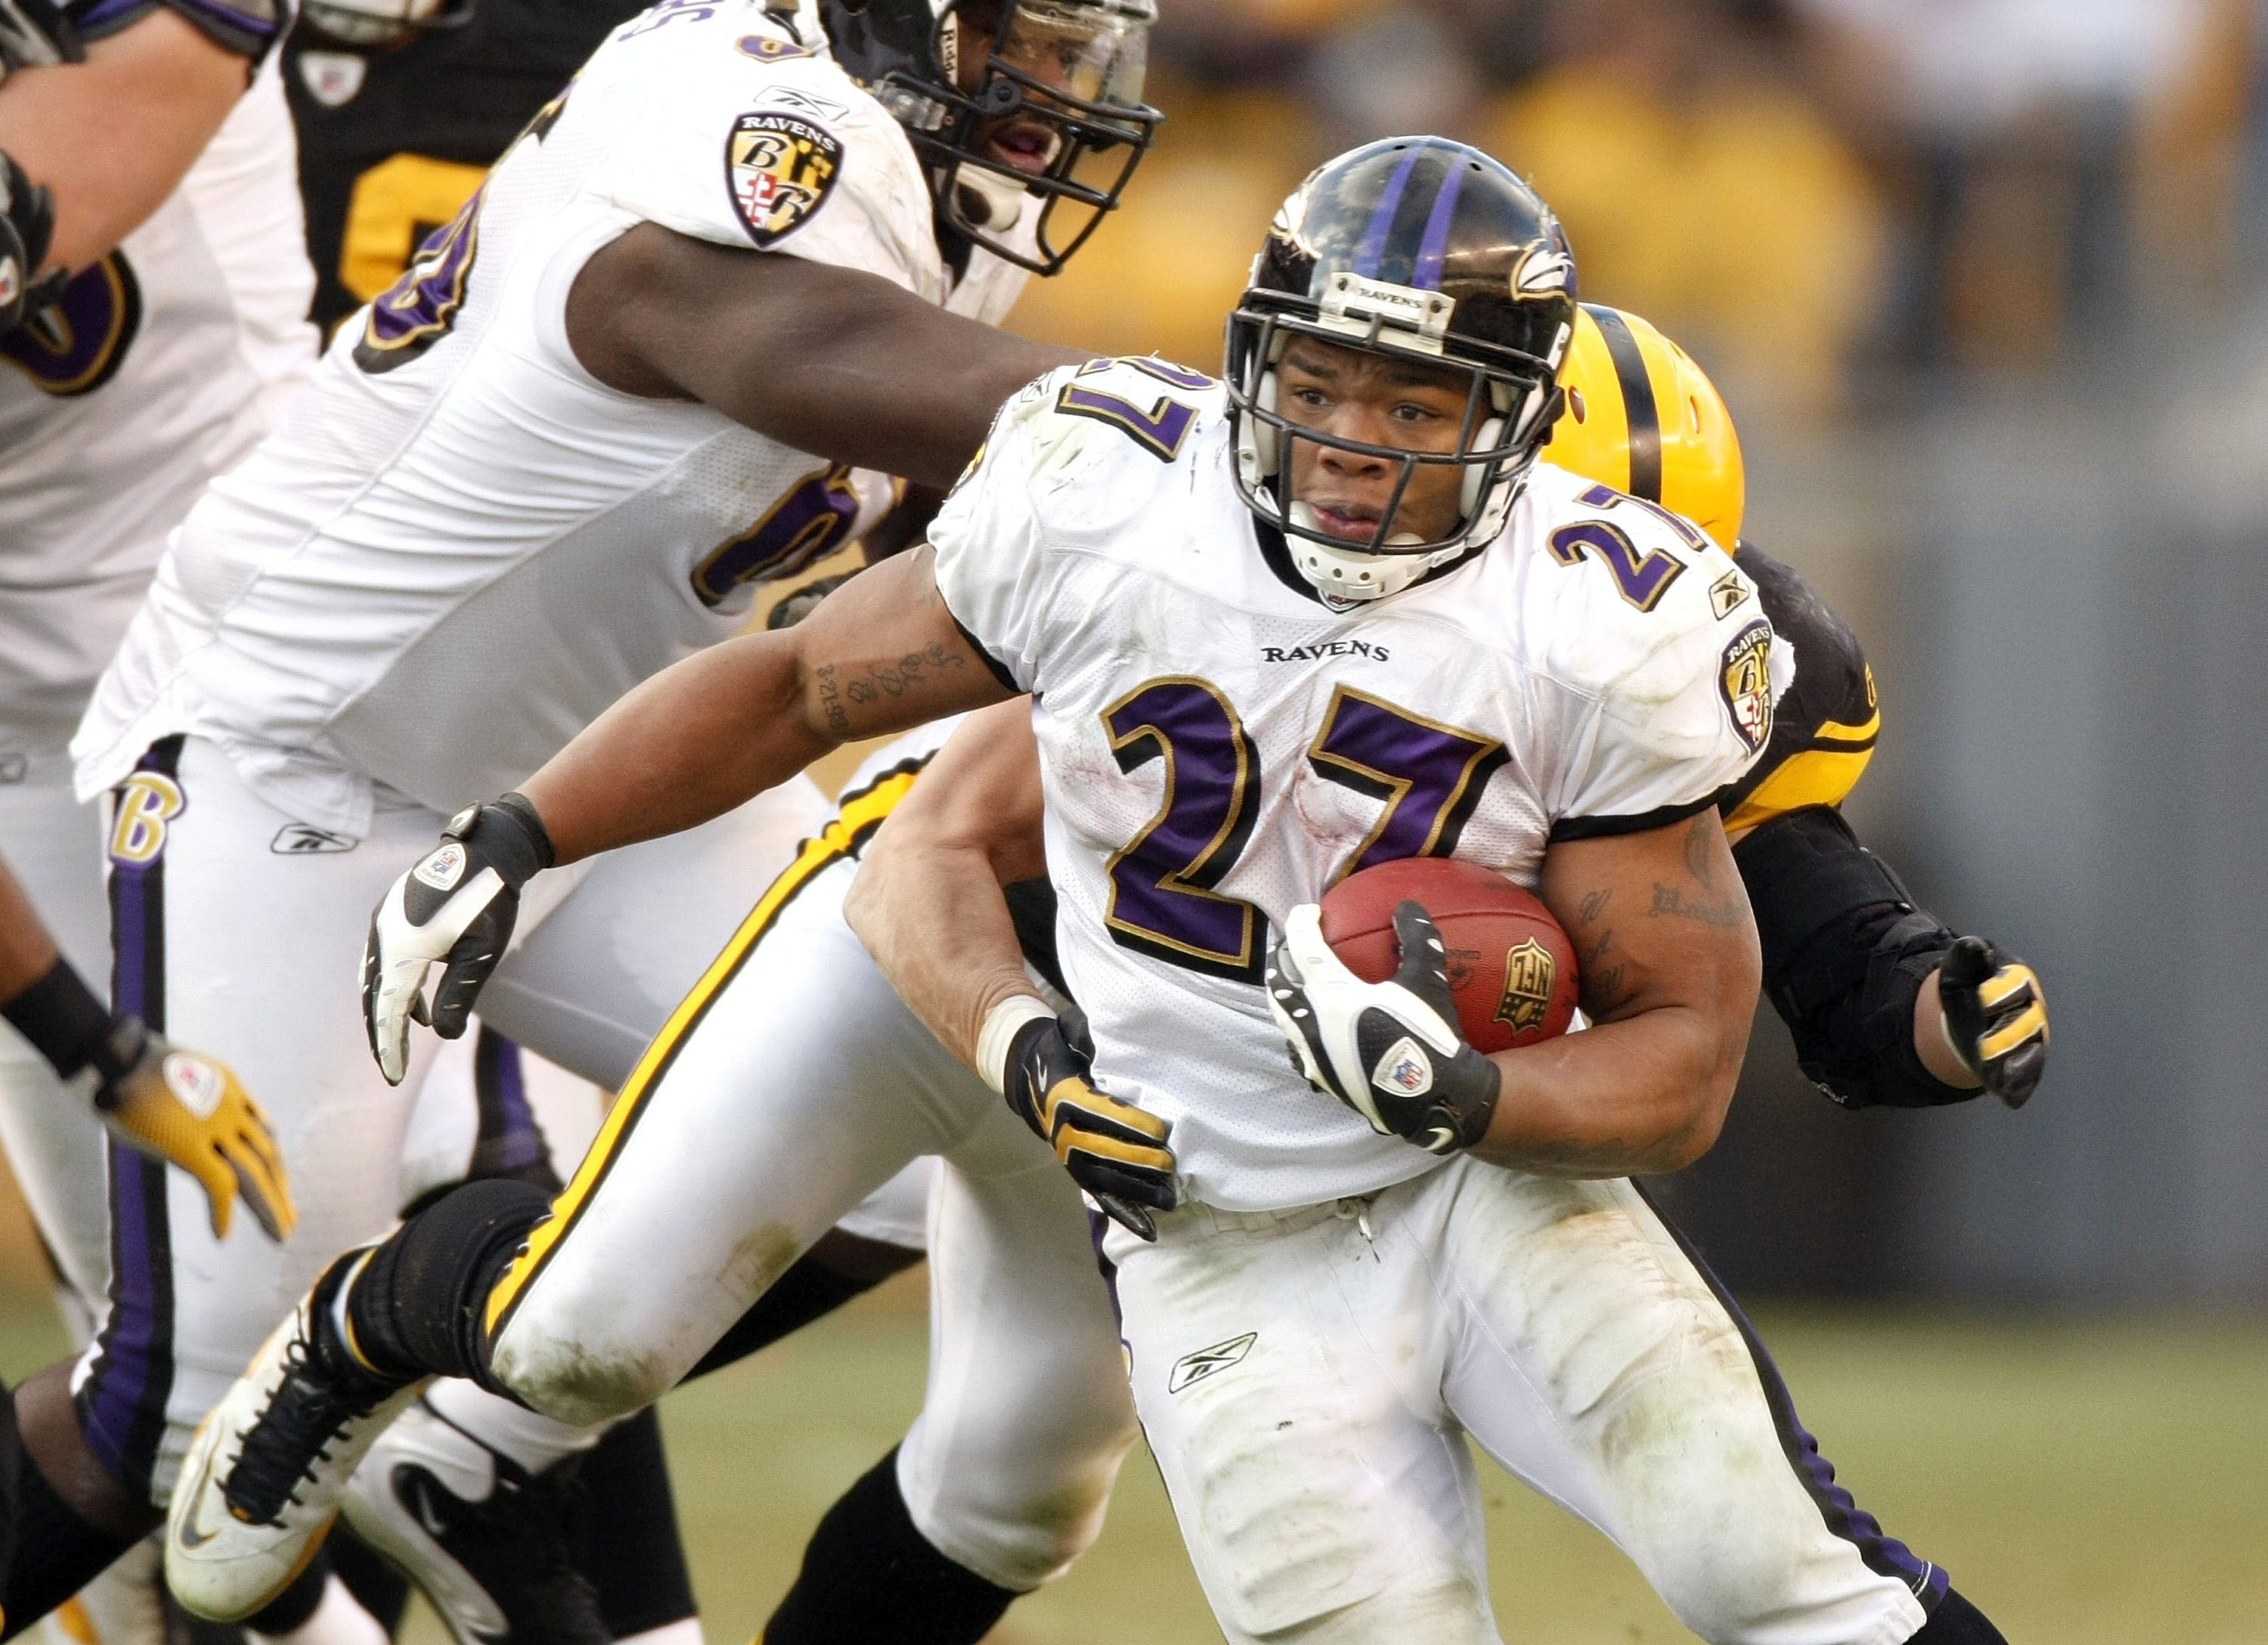 PITTSBURGH - DECEMBER 27:  Ray Rice #27 of the Baltimore Ravens looks for yards during a third quarter run against the Pittsburgh Steelers on December 27, 2009 at Heinz Field in Pittsburgh, Pennsylvania. Pittsburgh won the game 23-20.  (Photo by Gregory S